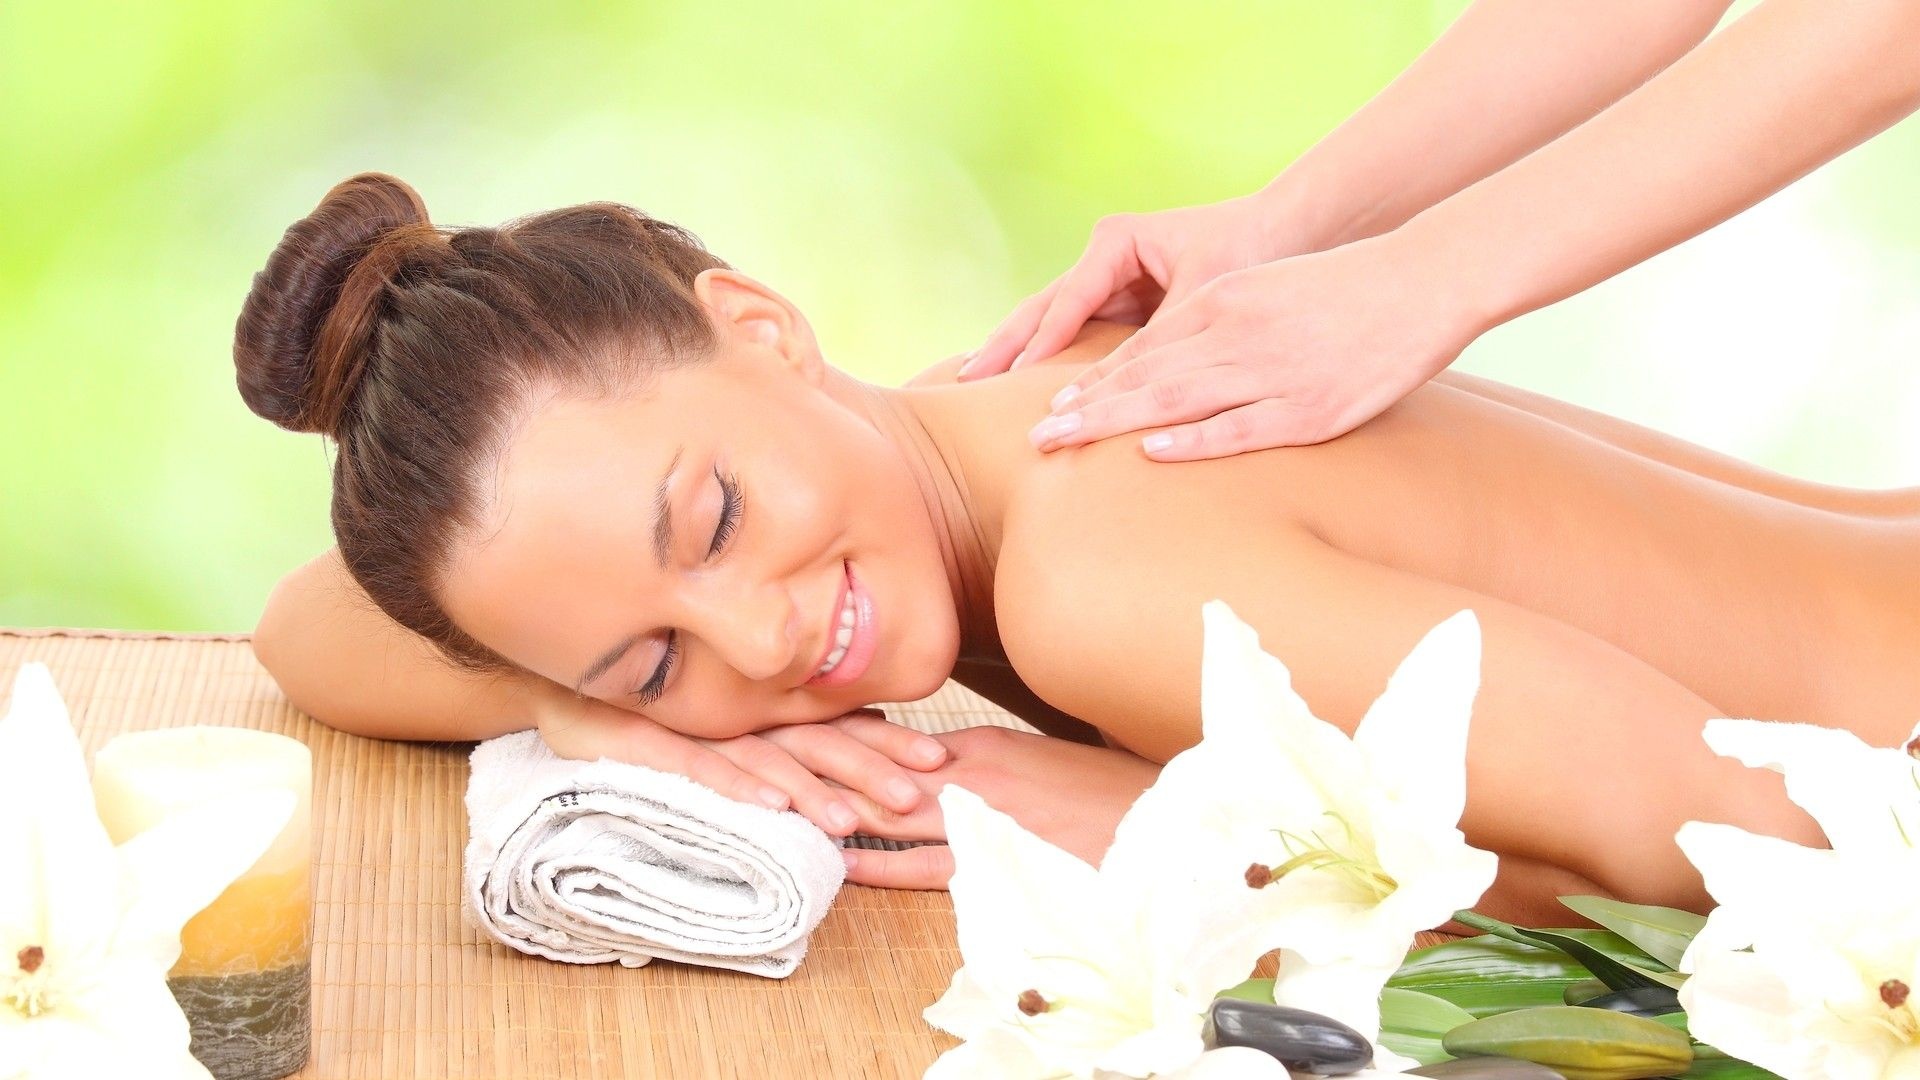 Massage Wallpaper Massage Wallpapers Hd Massage